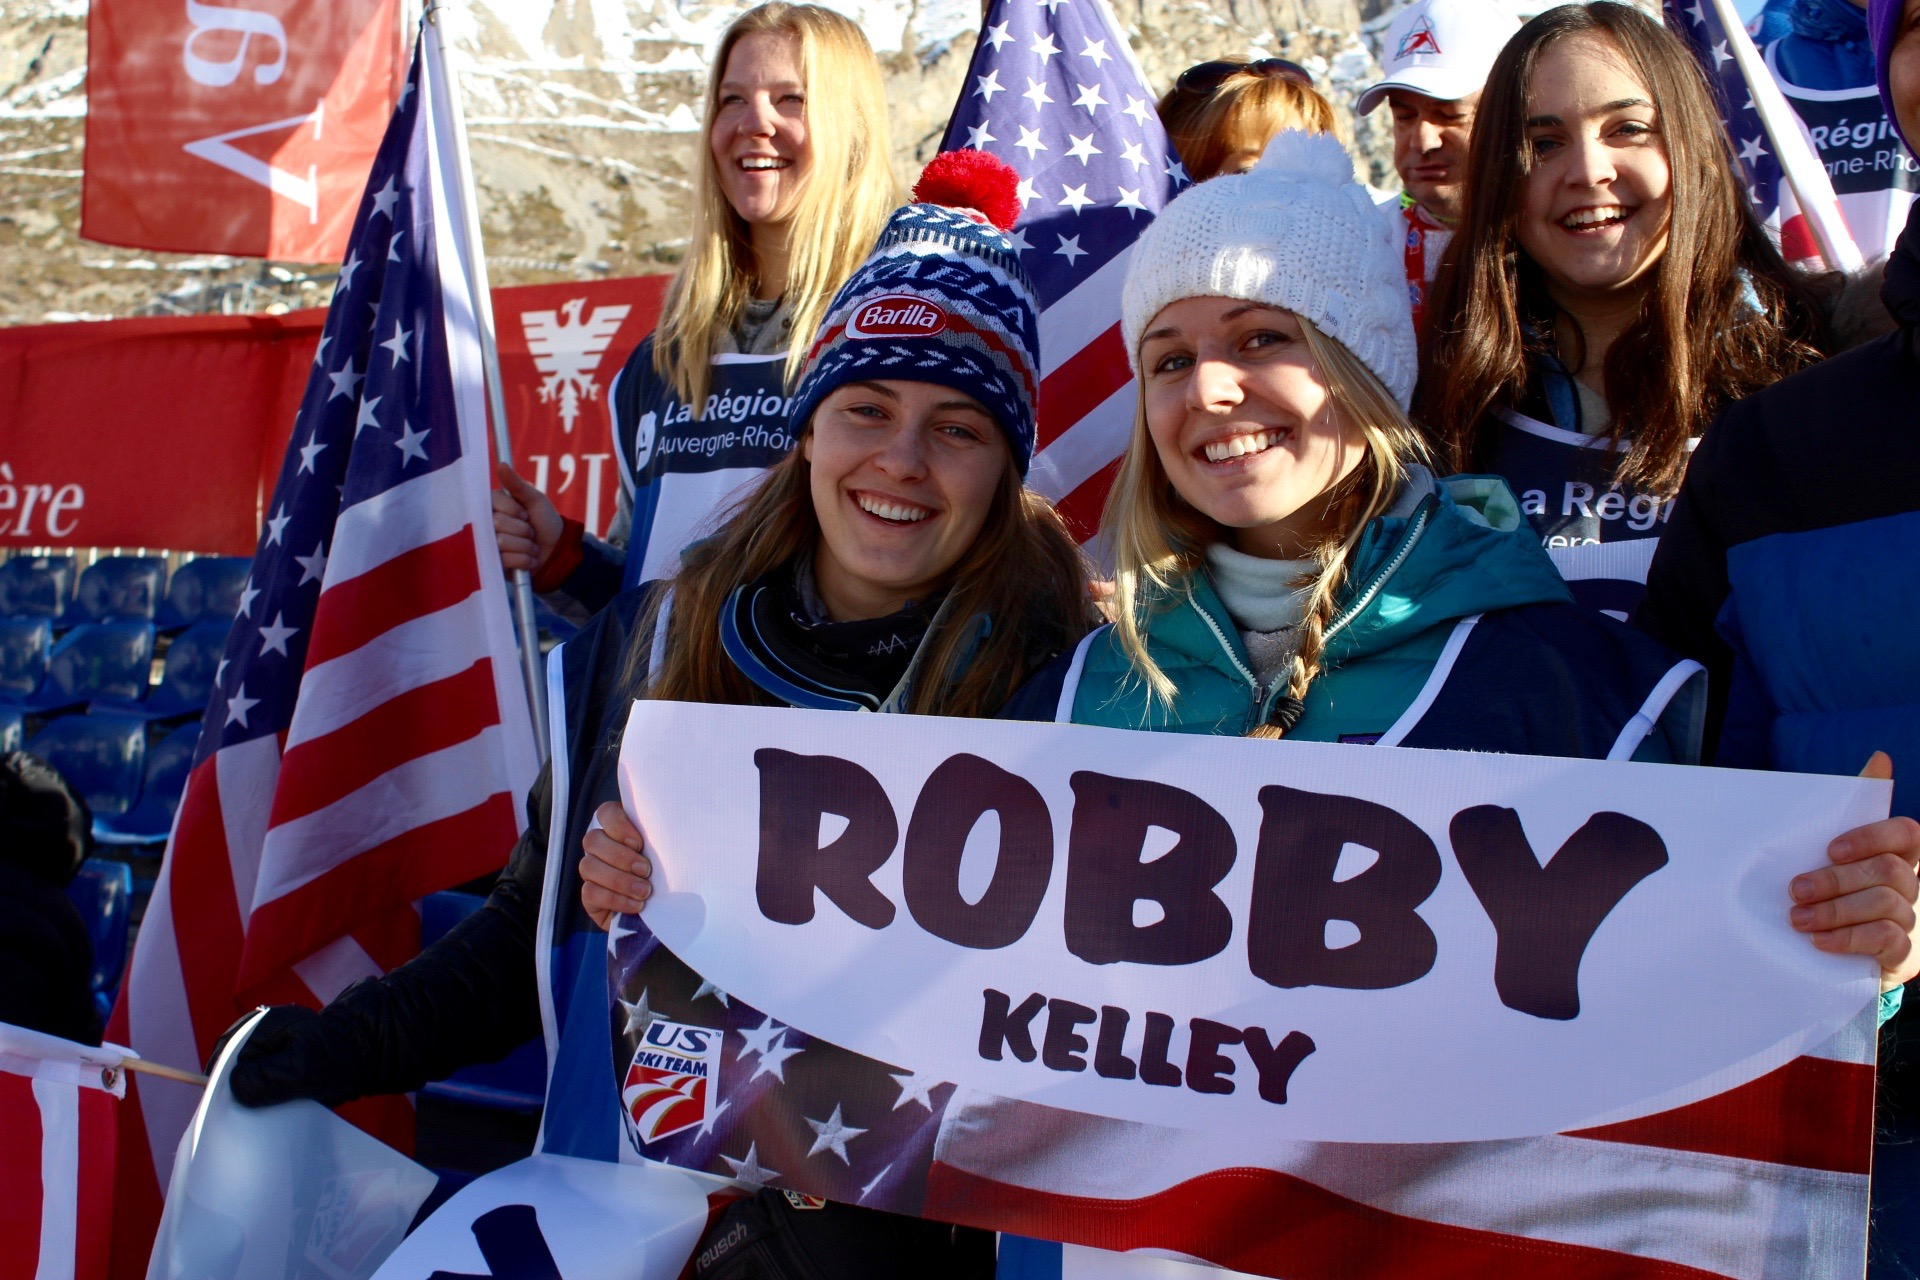 Those girls came all the way from Norway to cheer american racers..  See you in Killington 2017 Ashley and Lauren